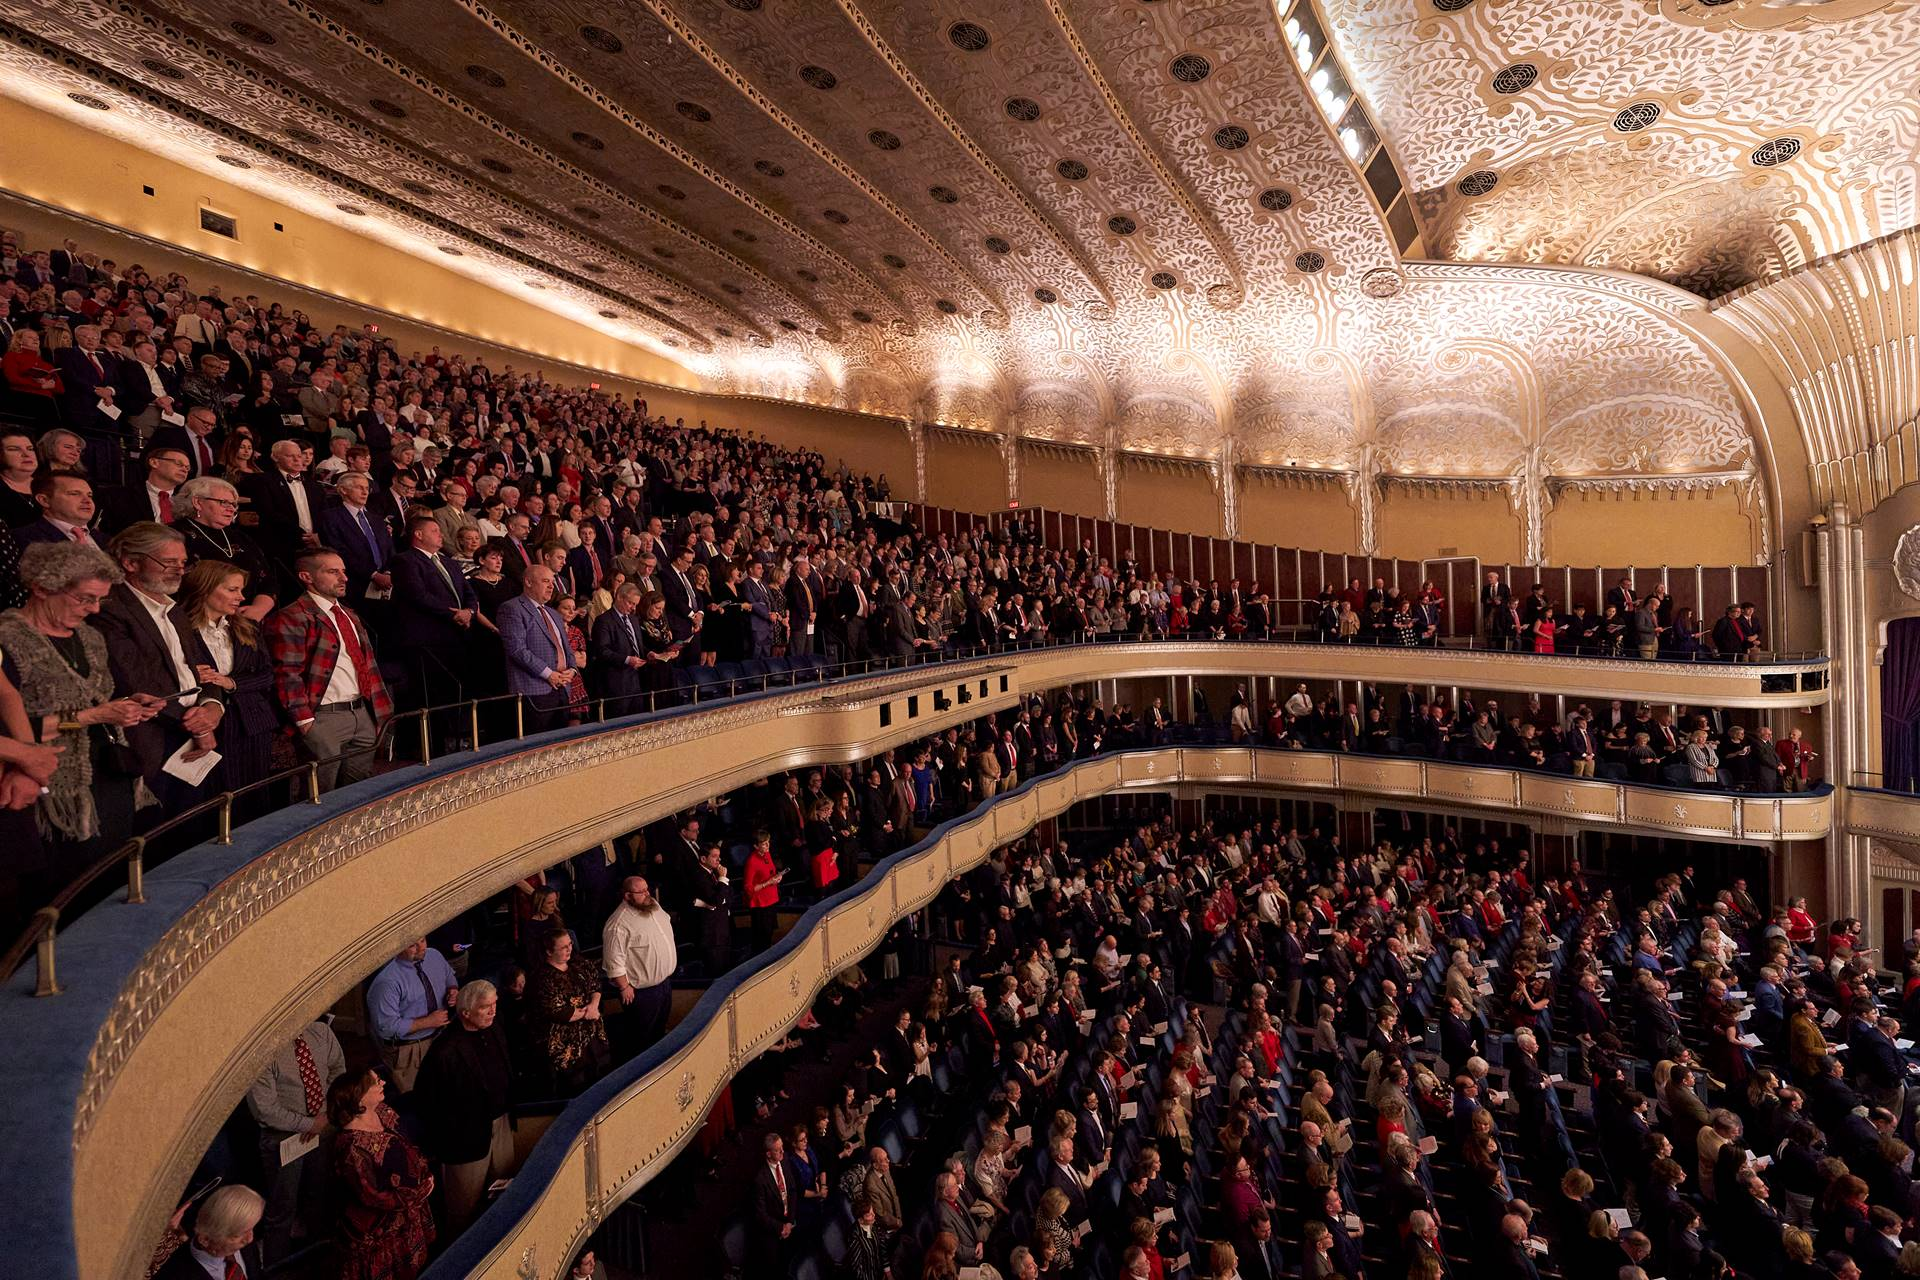 35th Annual Christmas Concert at Severance Hall